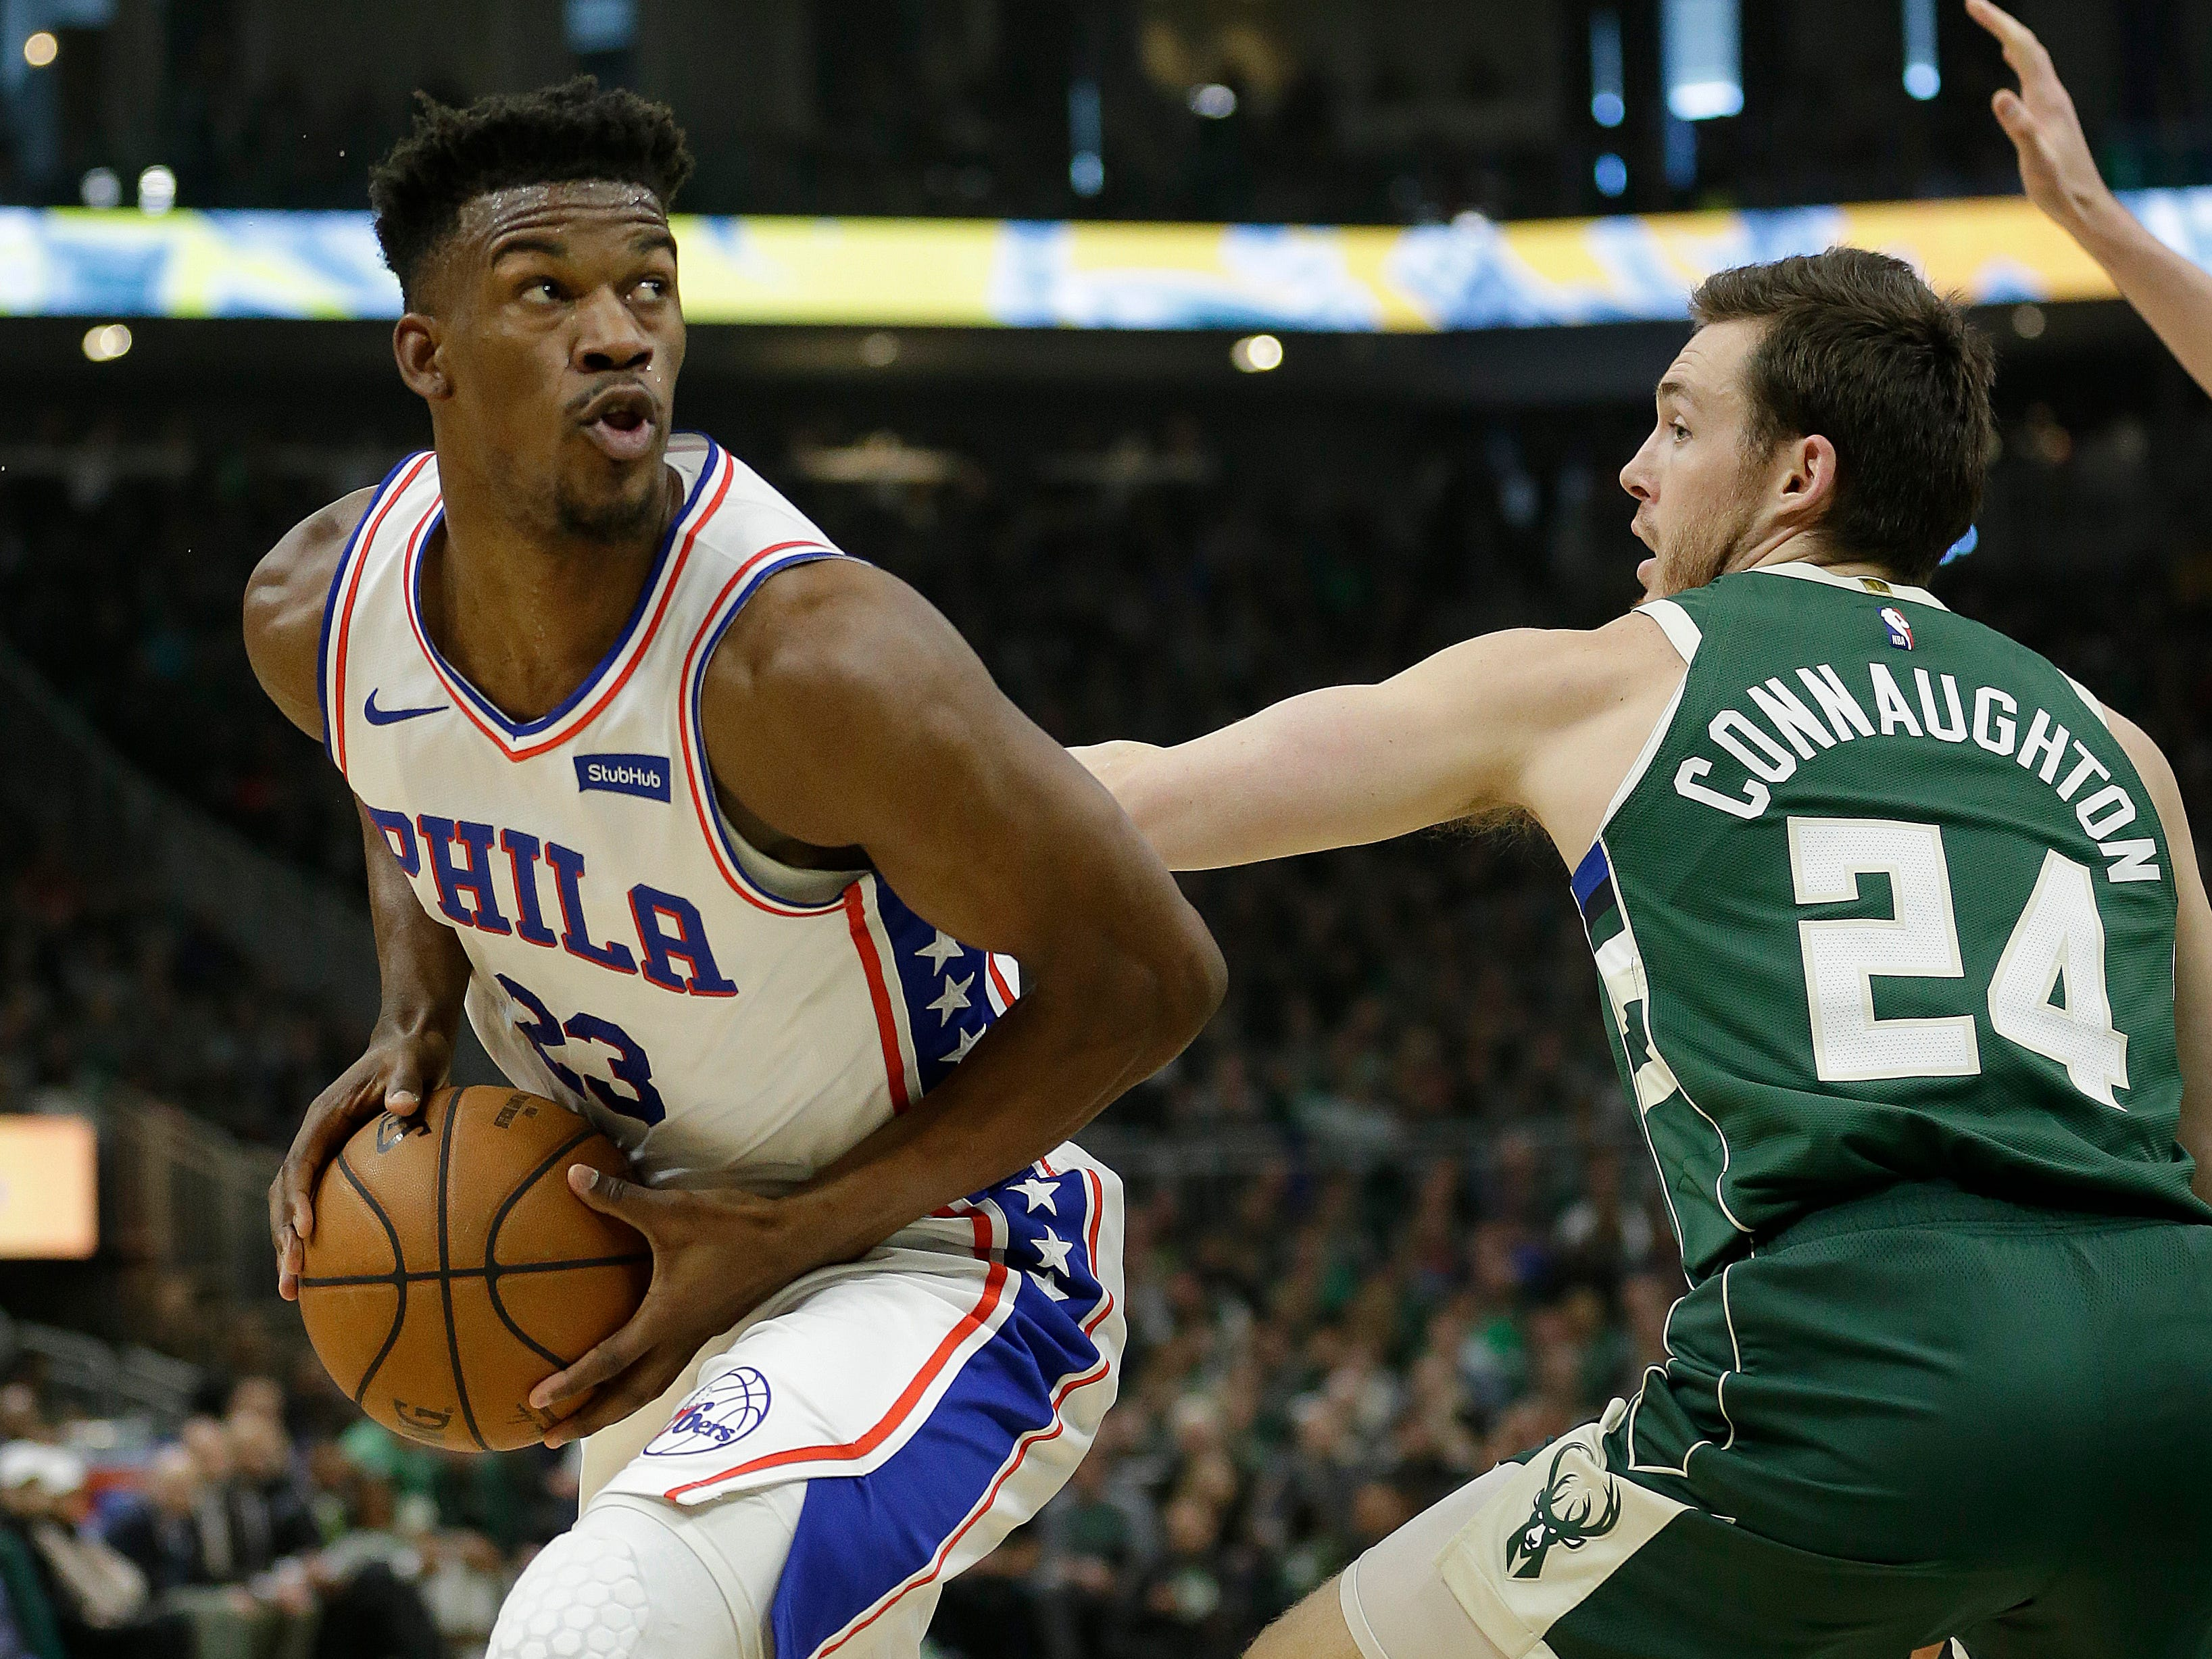 Former Marquette standout Jimmy Butler of the 76ers looks to shoot against Bucks guard Pat Connaughton during the first half. Butler finished with 27 points in Philadelphia's victory.